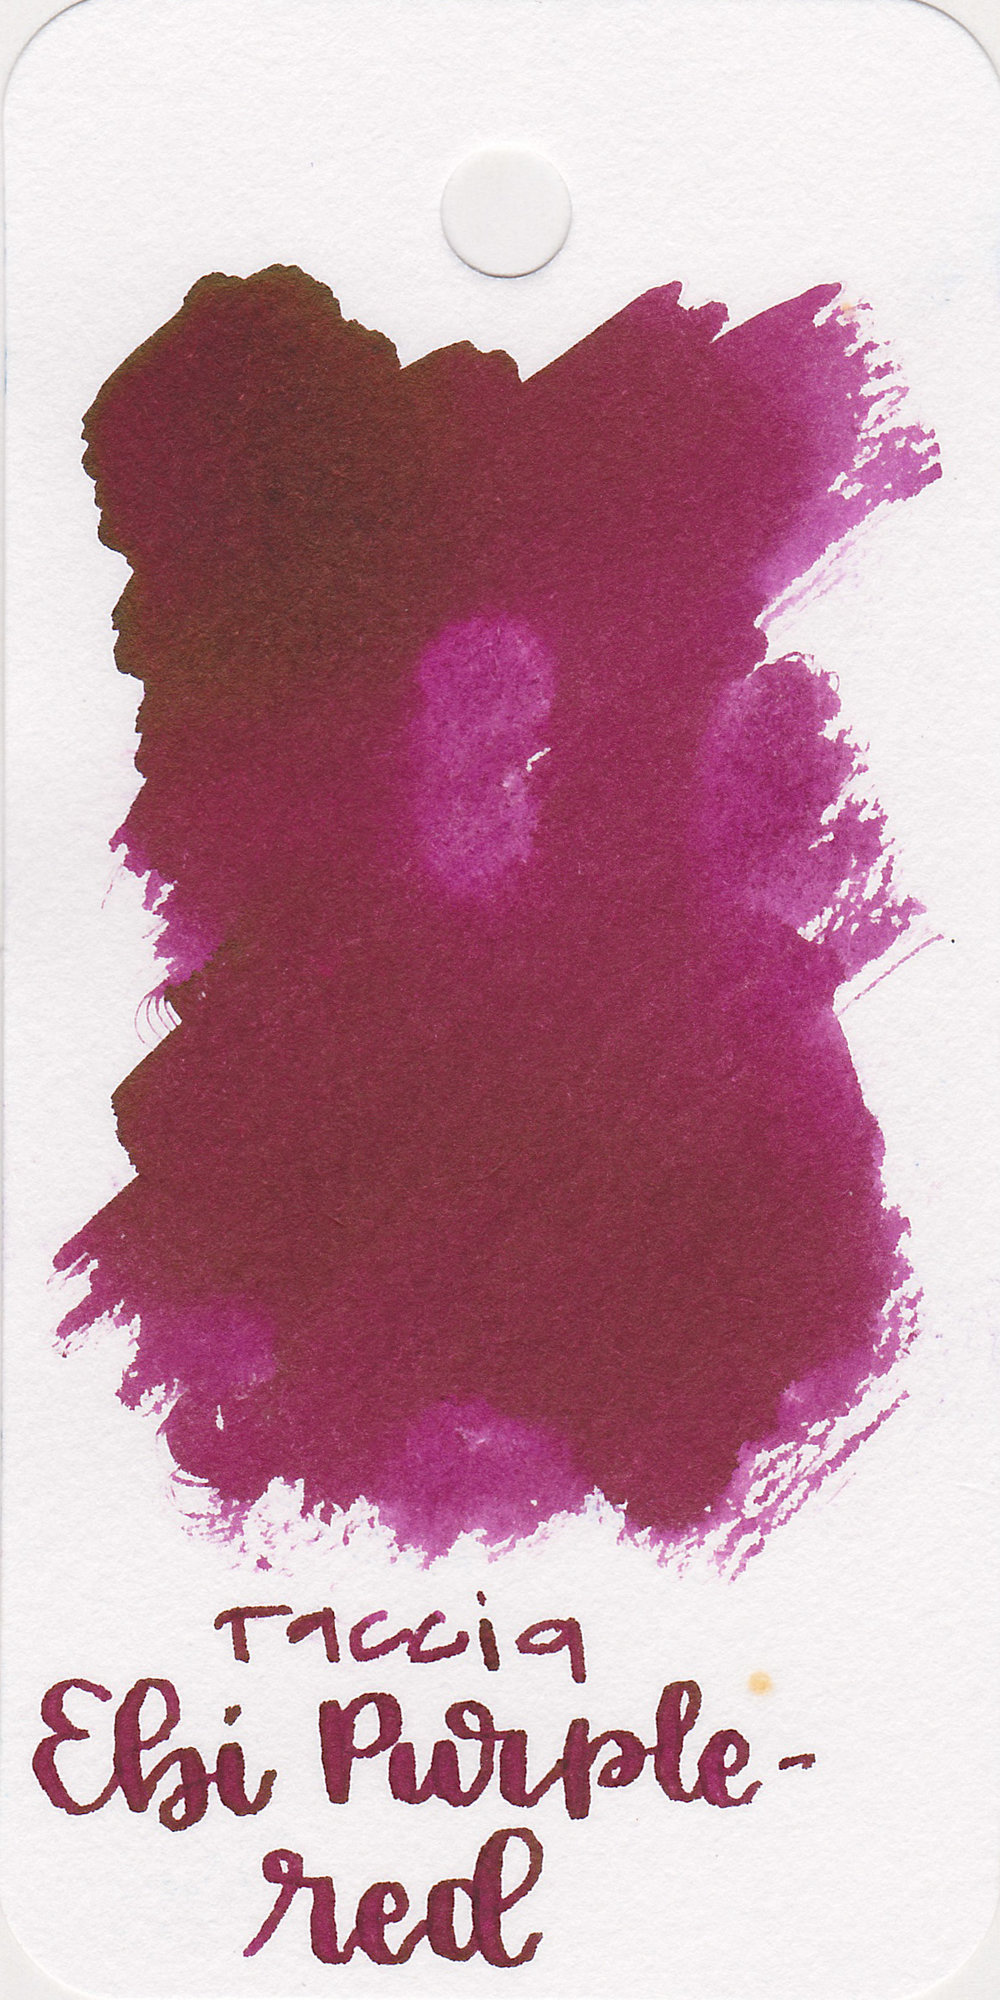 tac-ebi-purple-red-1.jpg